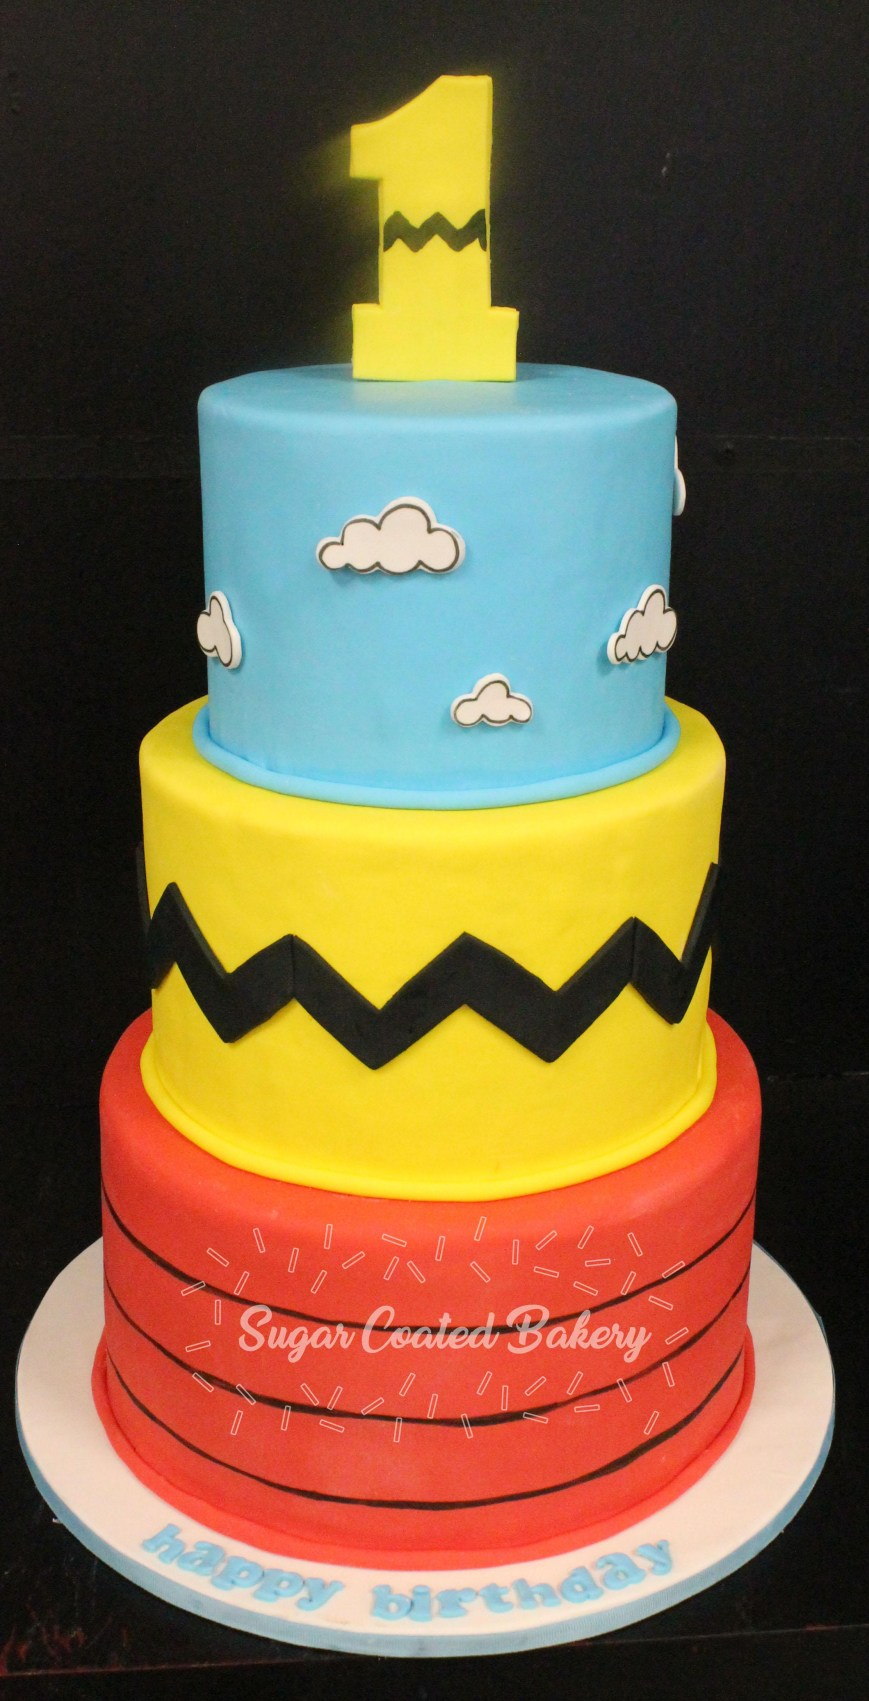 Charlie Brown Birthday Cake Sugar Coated Bakery Lowell Baking Everyday Better